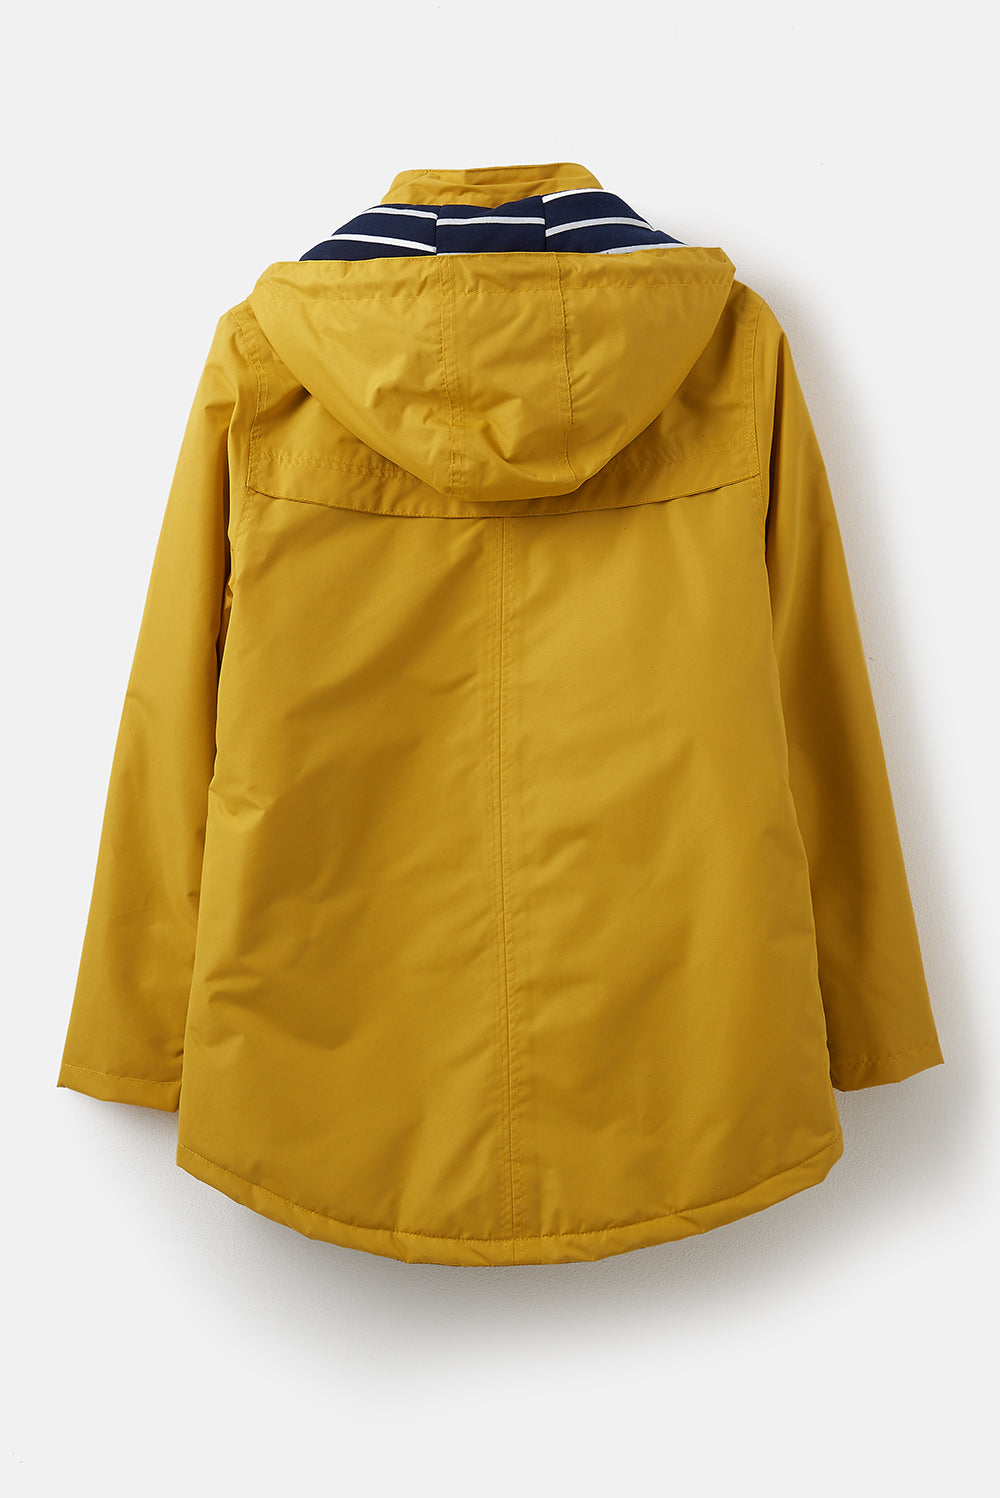 Lighthouse Iona Womens Warm Waterproof Raincoat - Yellow